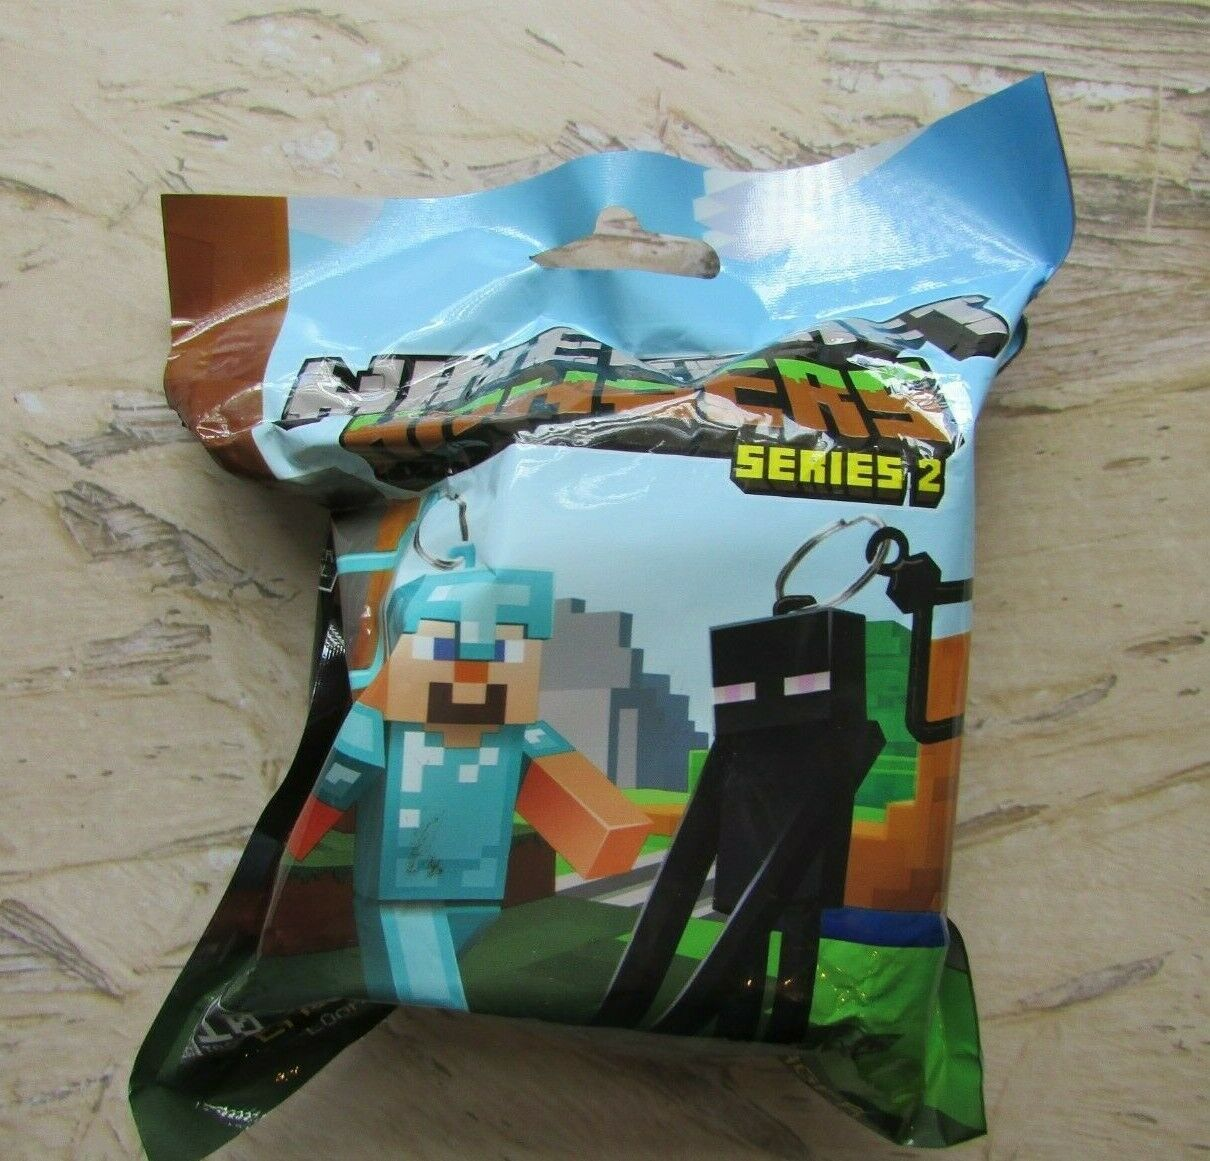 Primary image for Minecraft Hanger Keychain (1Pc Random Unopened Pack) - Series 2